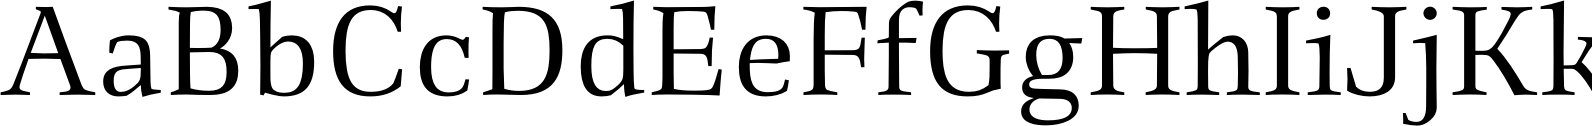 Richler Greek Pro Regular Font